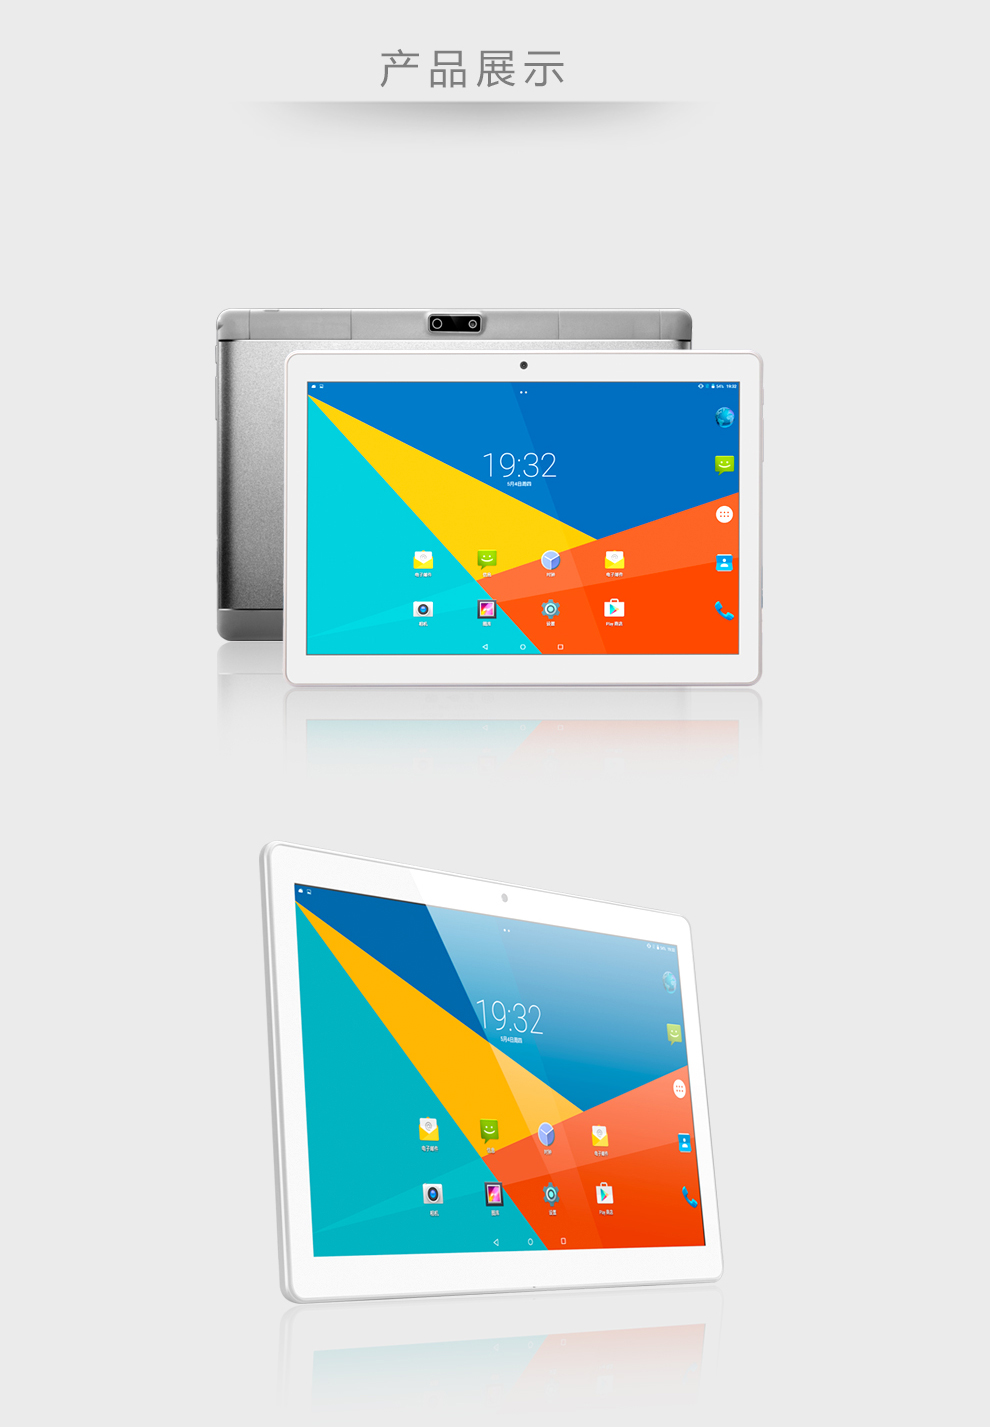 Tablet PC 8.0 inch 8001280 Pixels IPS Android 6.0